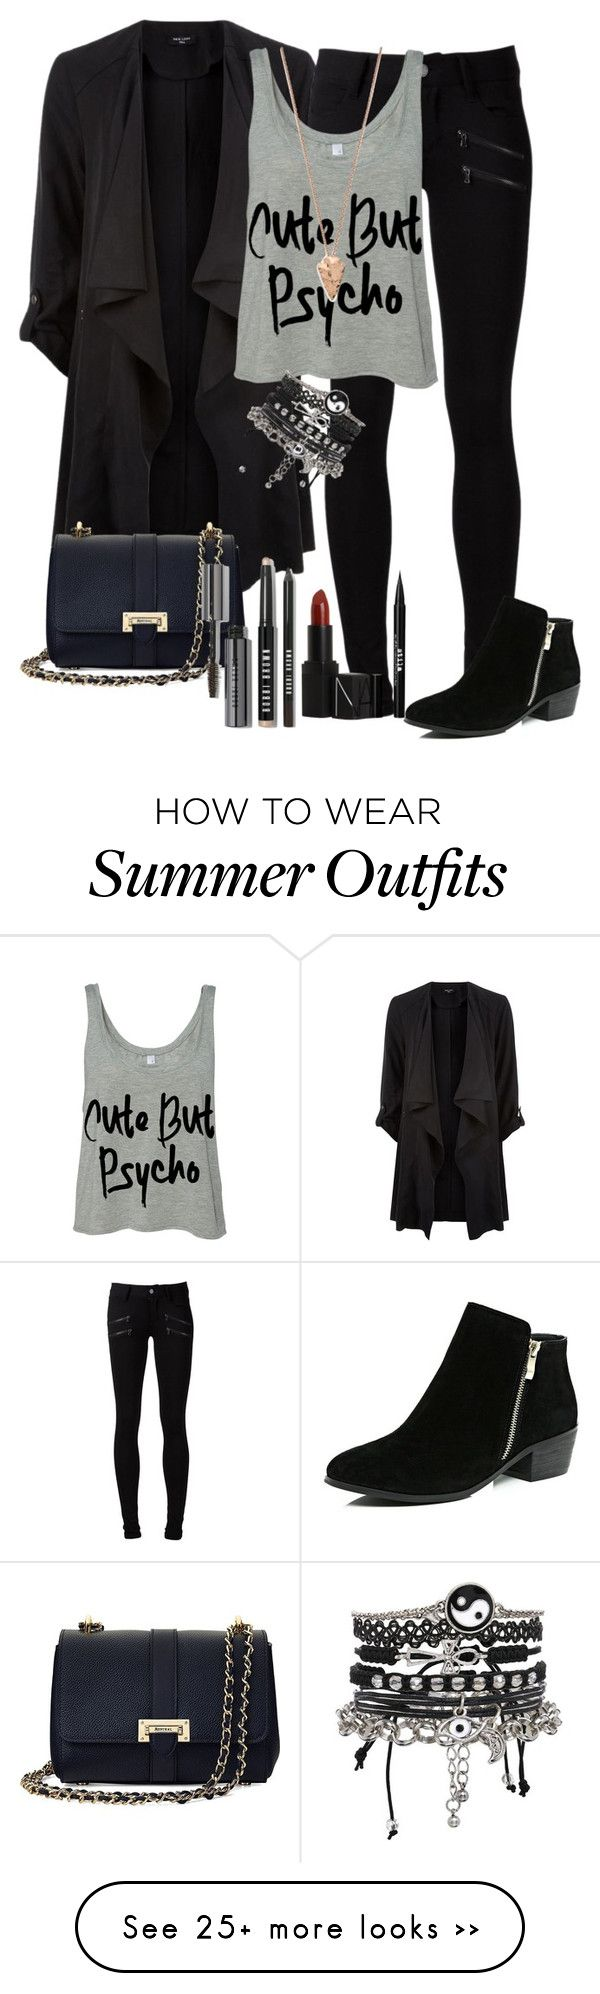 """Untitled #37"" by sophie-harris15 on Polyvore featuring Paige Denim, Aspinal of London, ASOS, River Island, NARS Cosmetics, Pamela Love, Bobbi Brown Cosmetics and Stila"